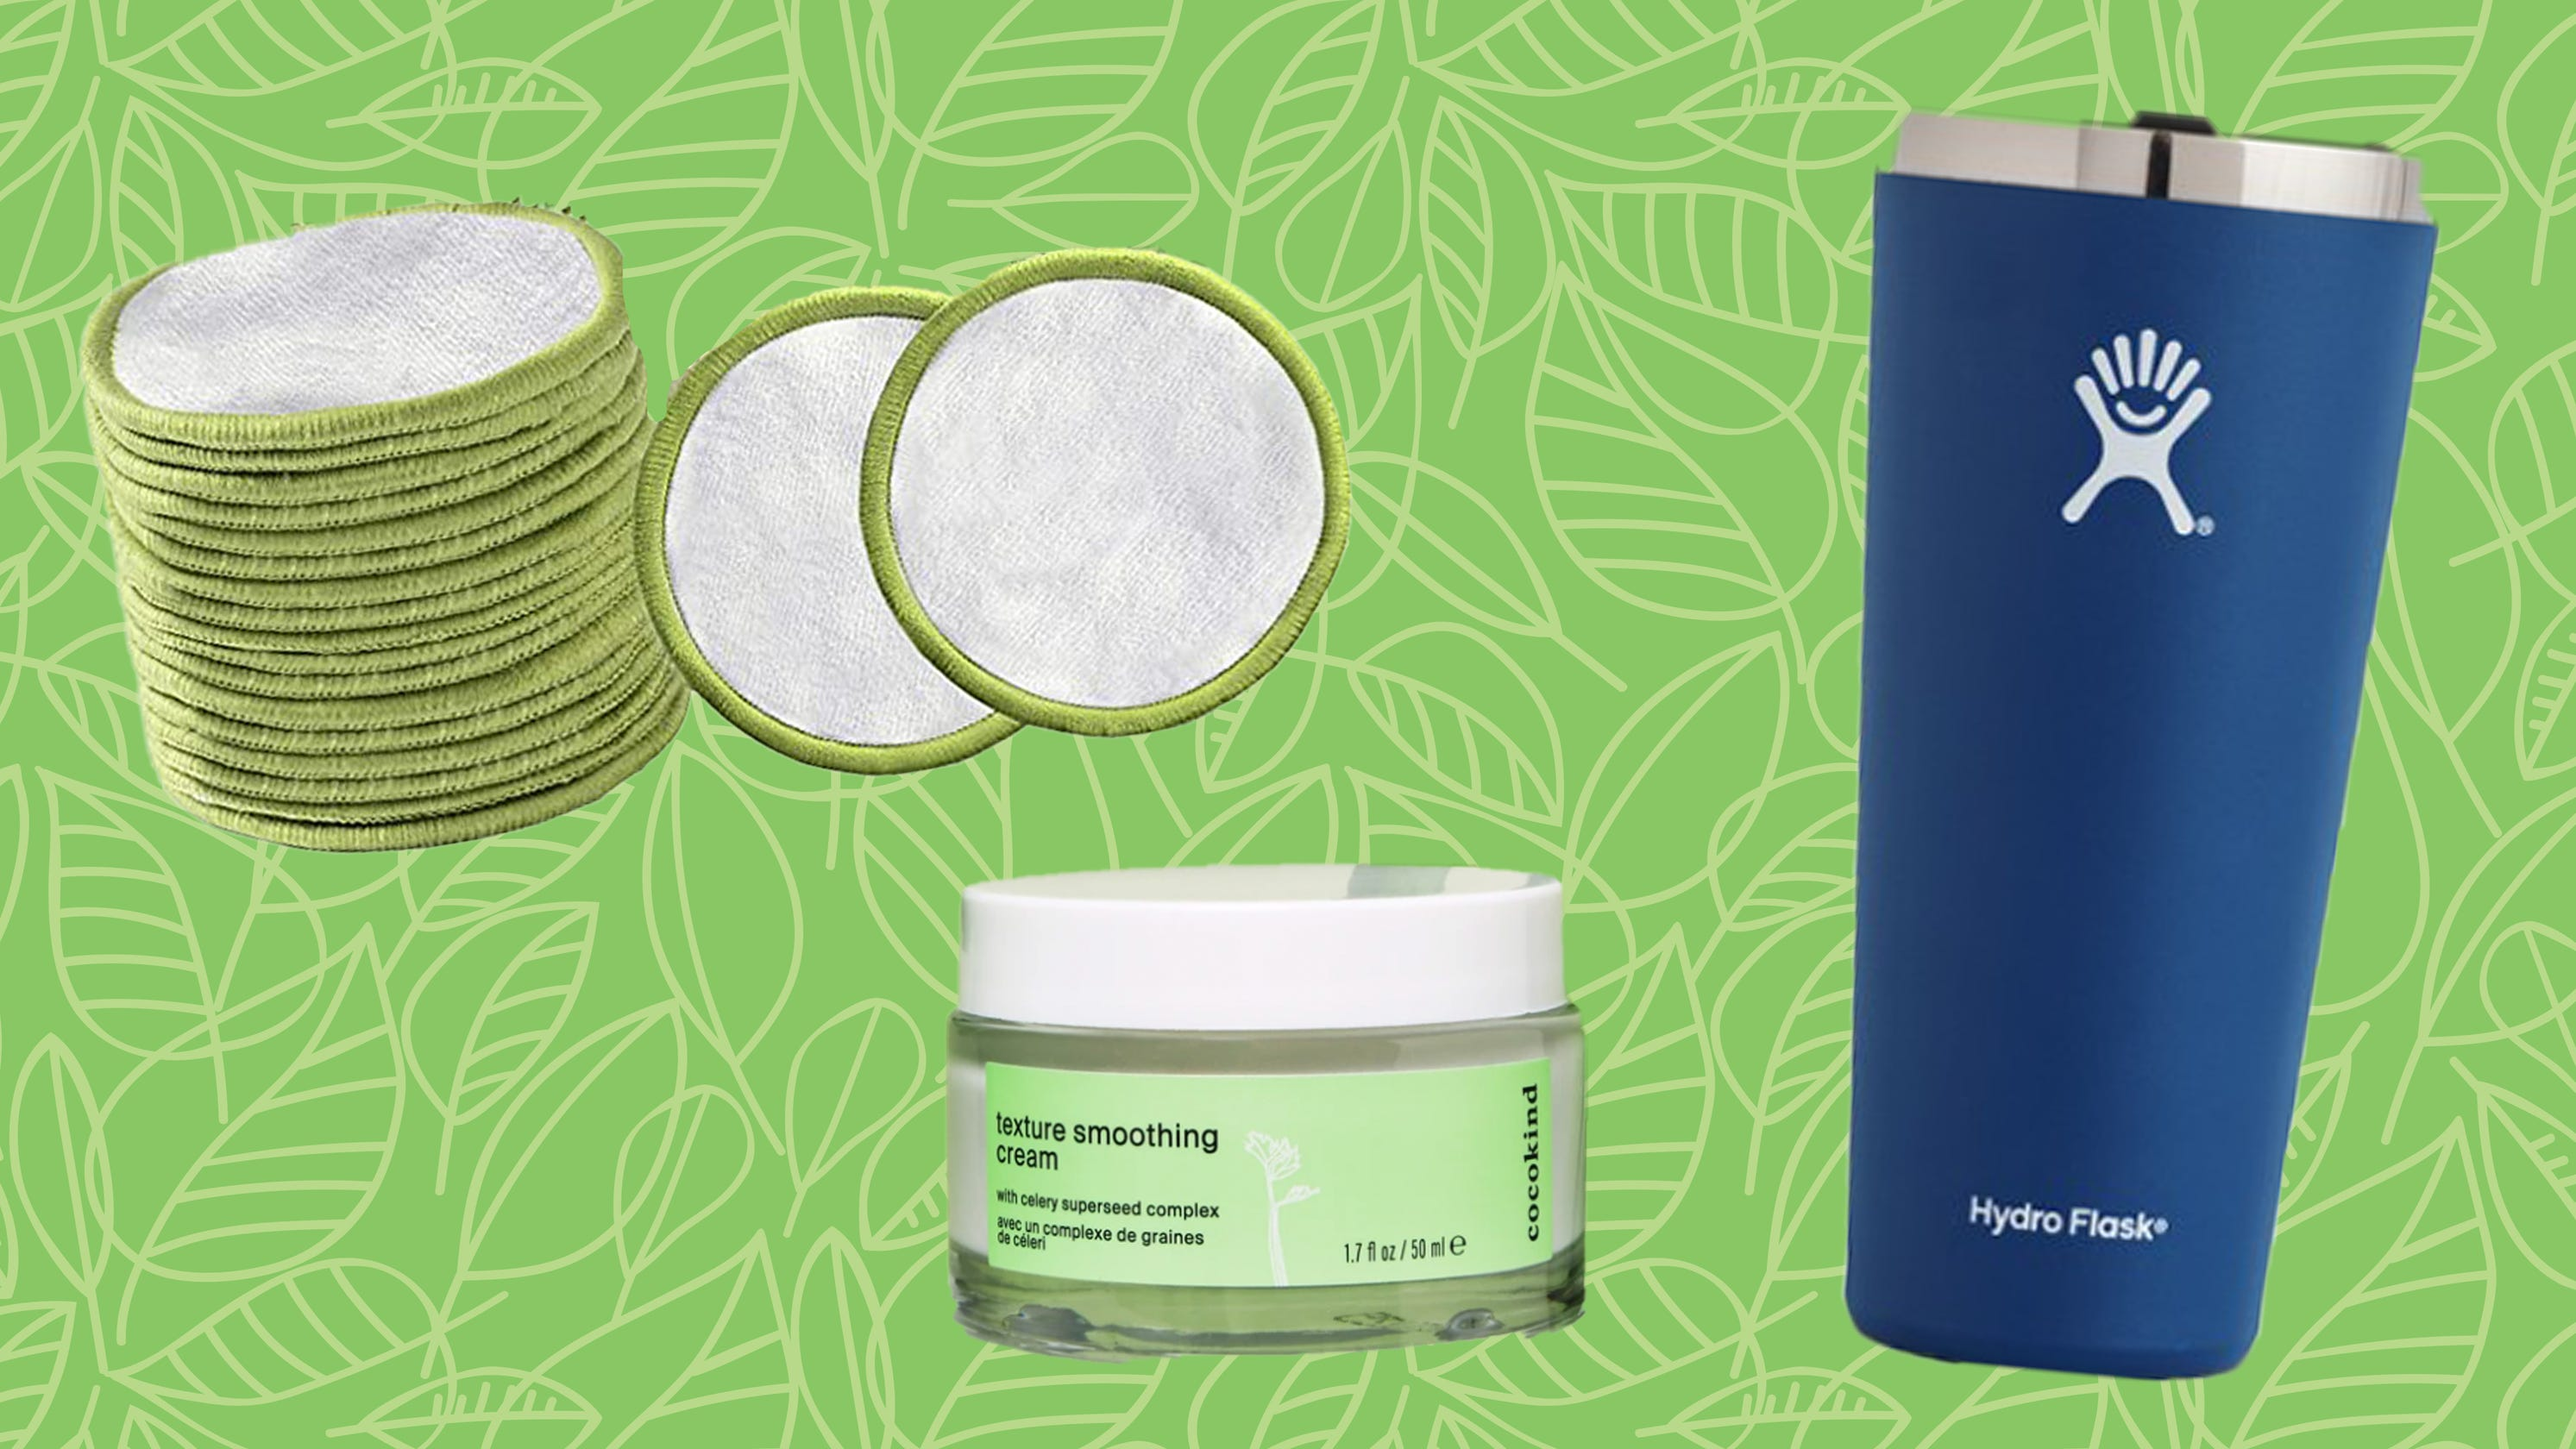 Earth Day 2021: 10 eco-friendly products to buy on sale now